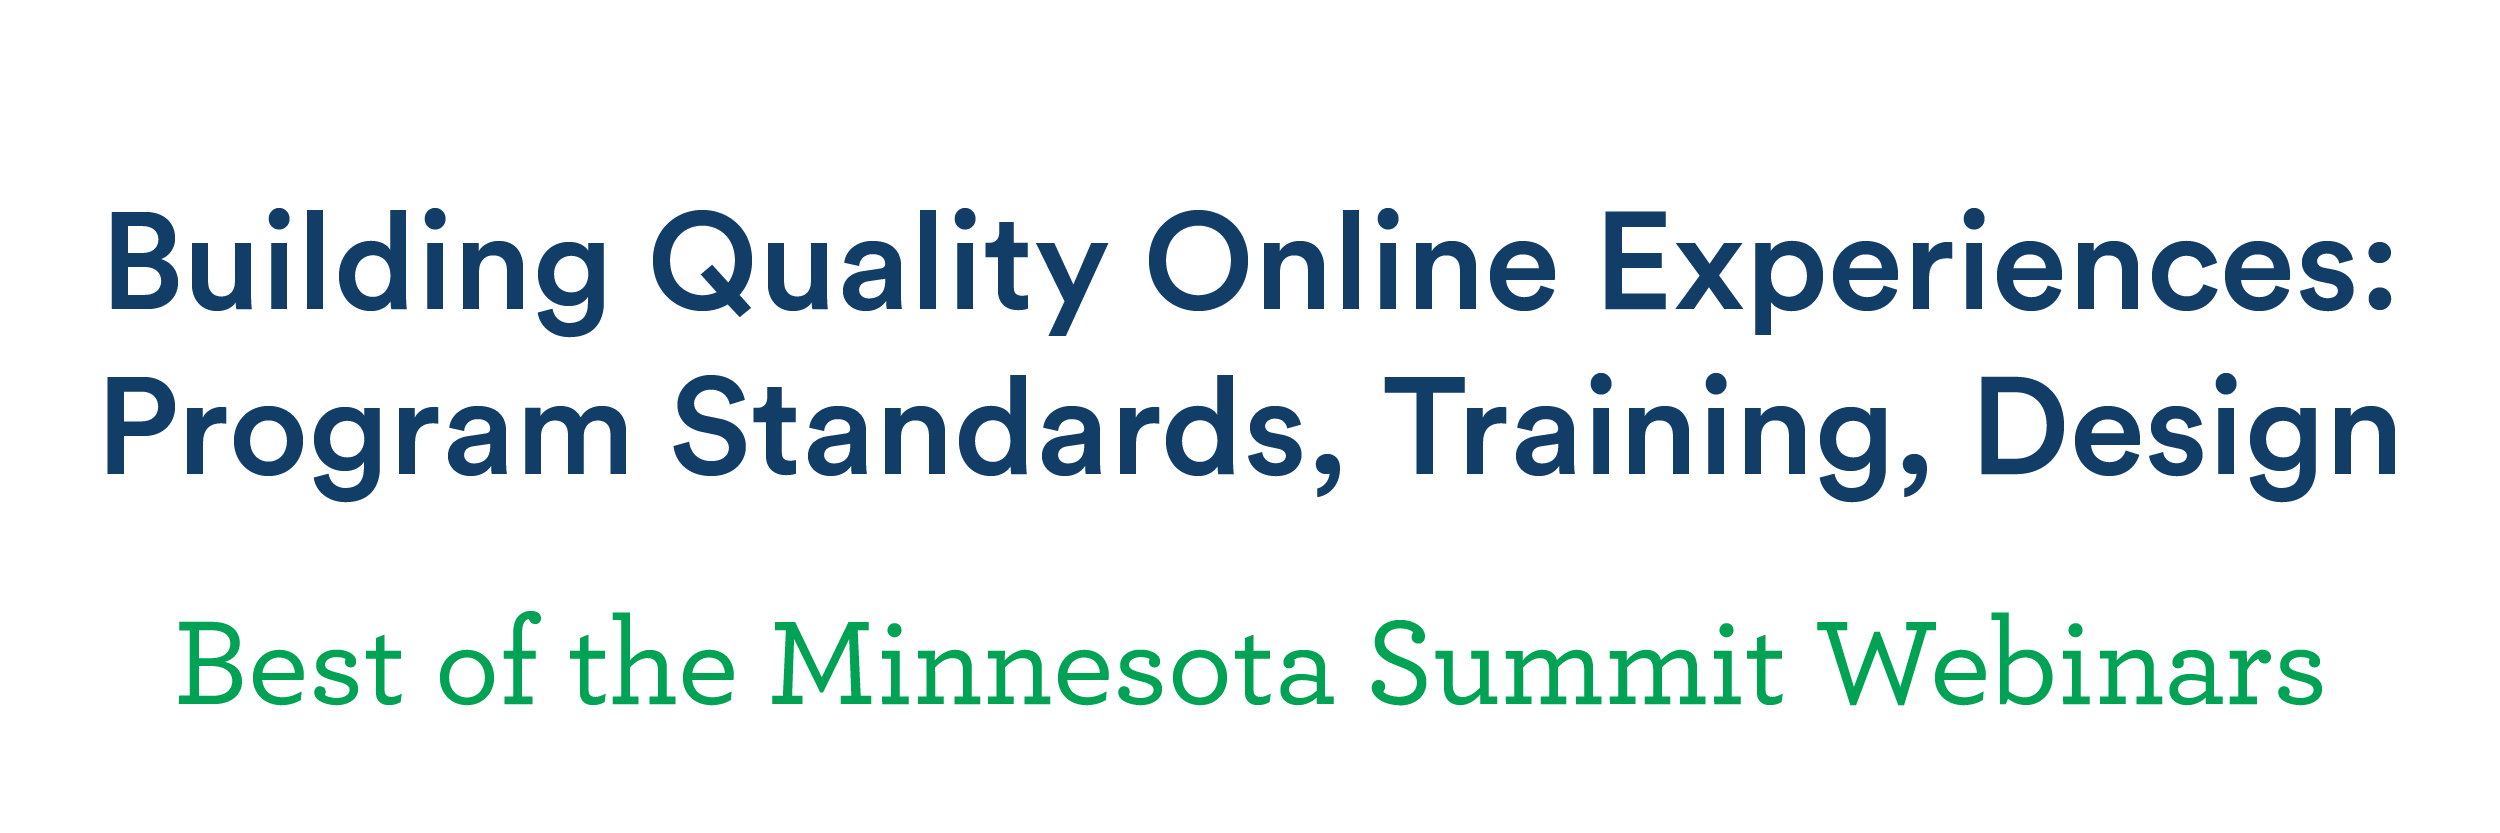 building-quality-online-experiences-banner